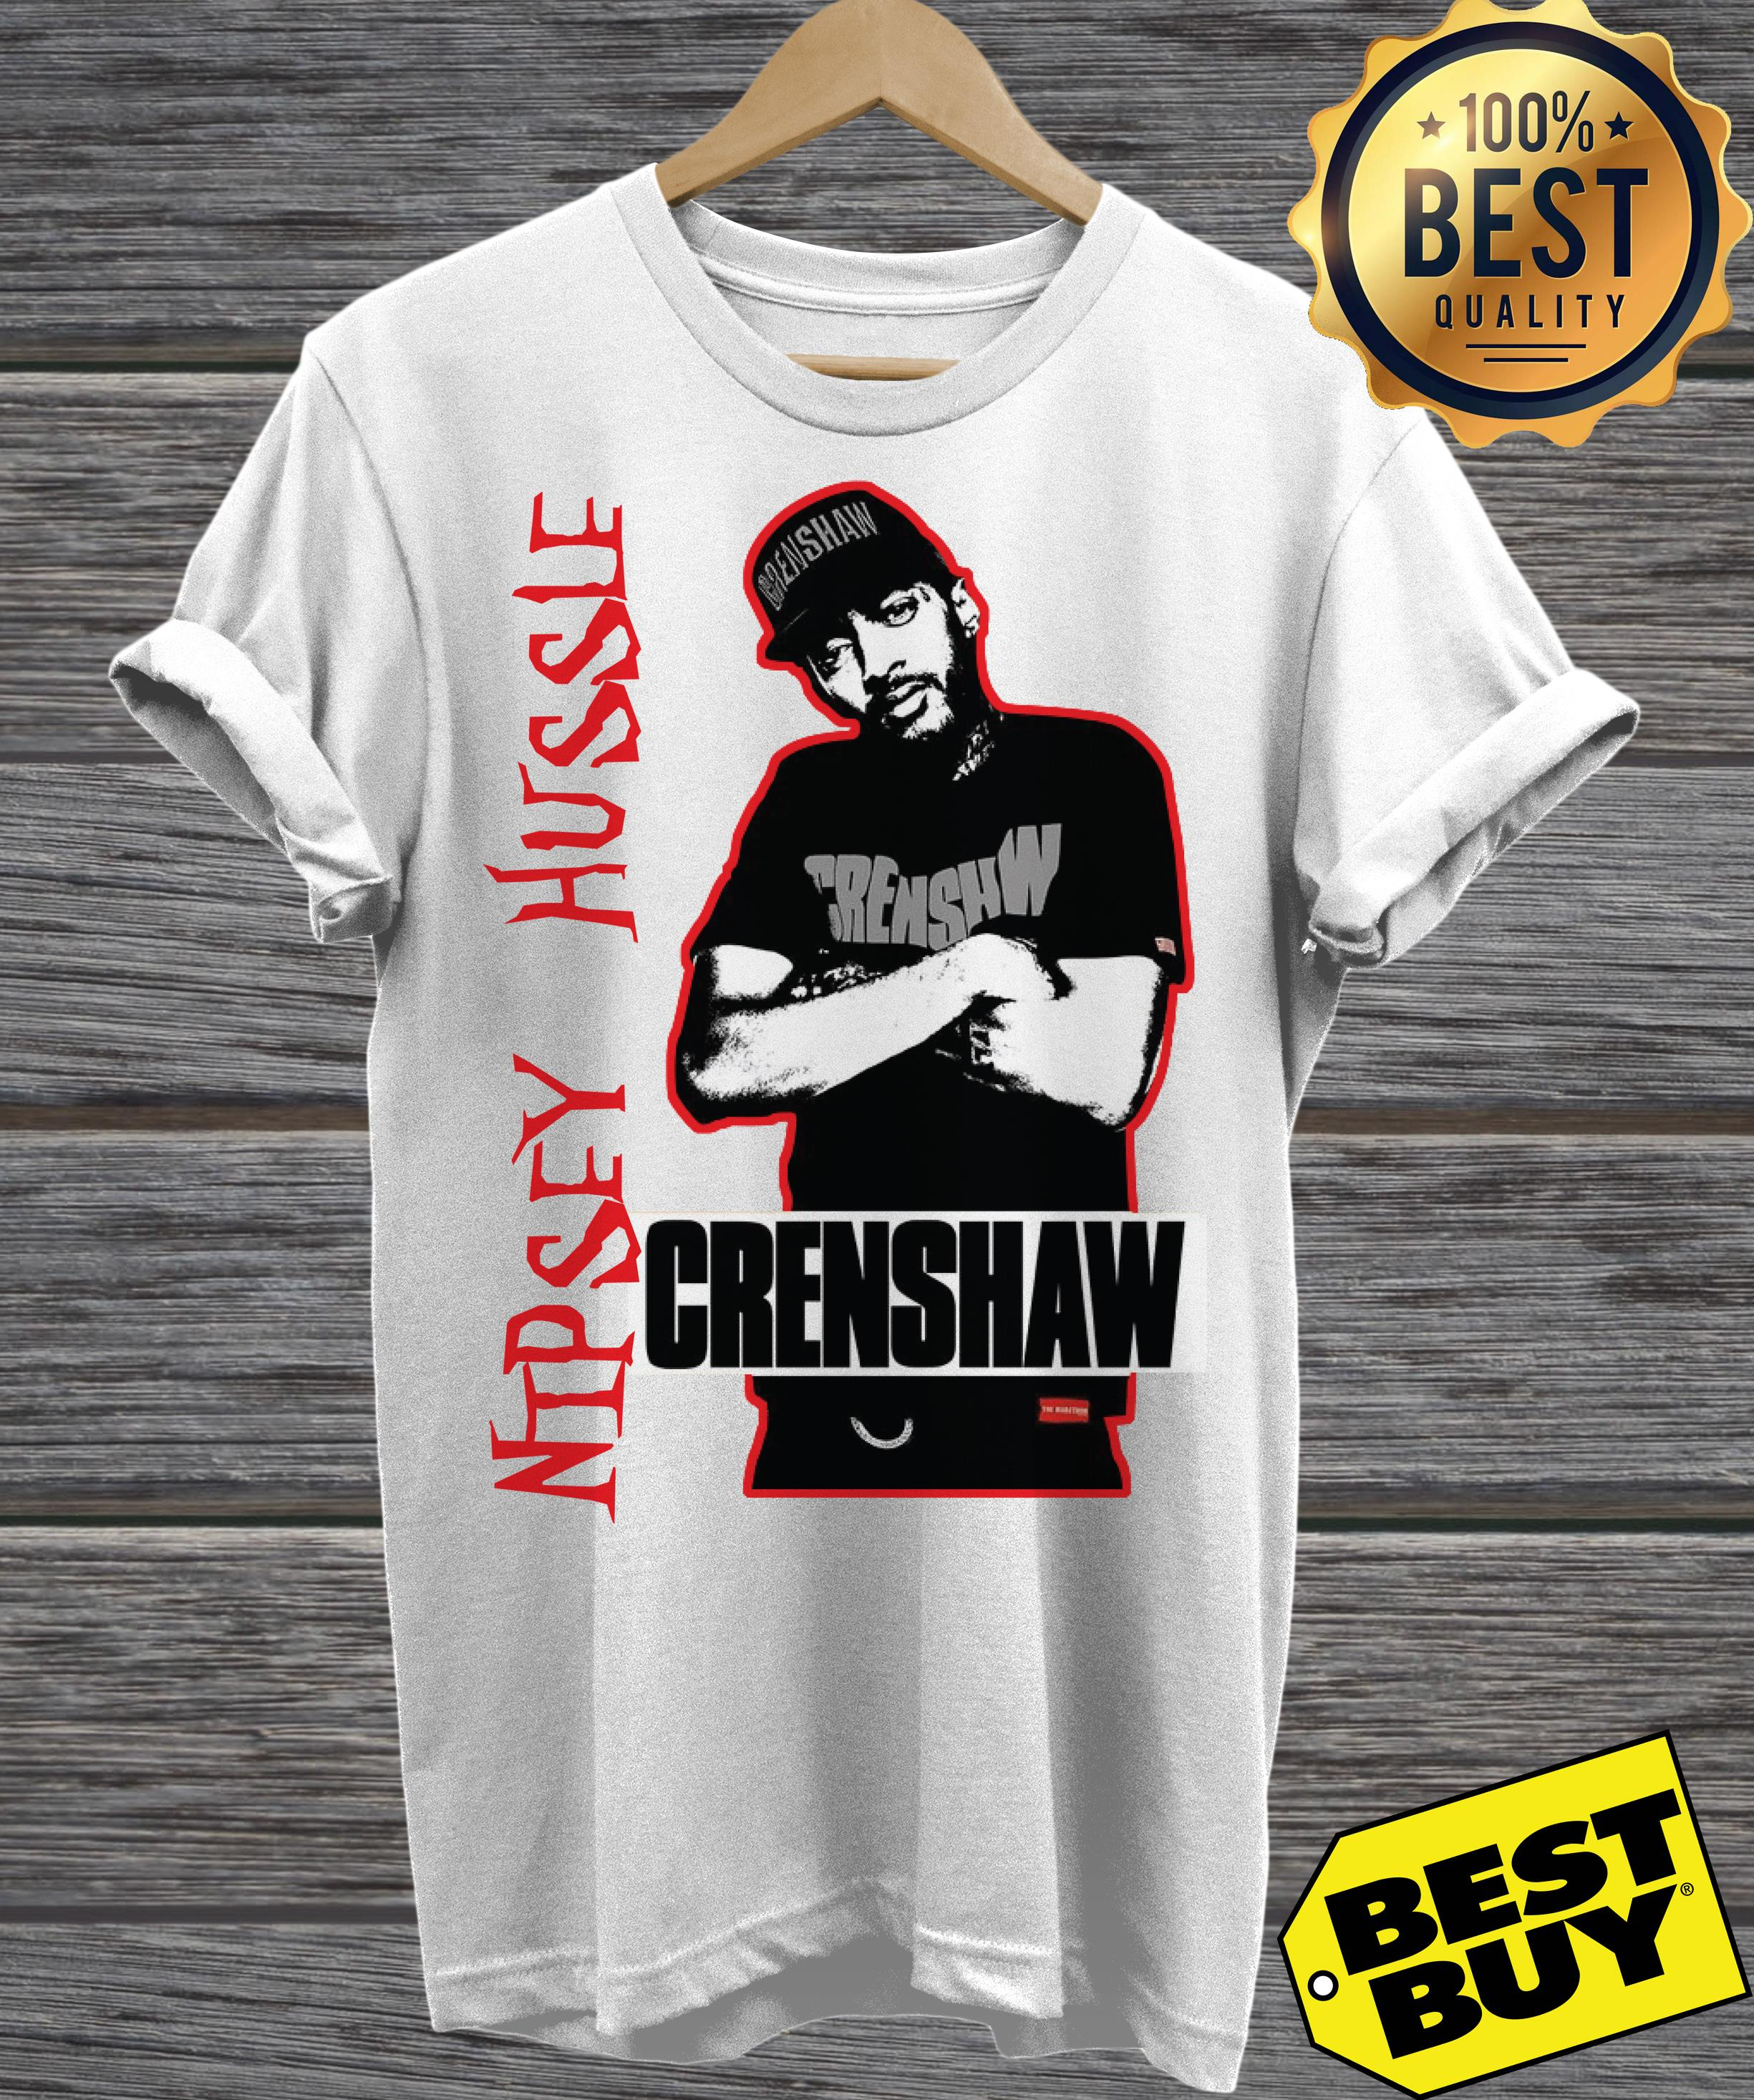 RIP Tribute to Nipsey Hussle Crenshaw tank top